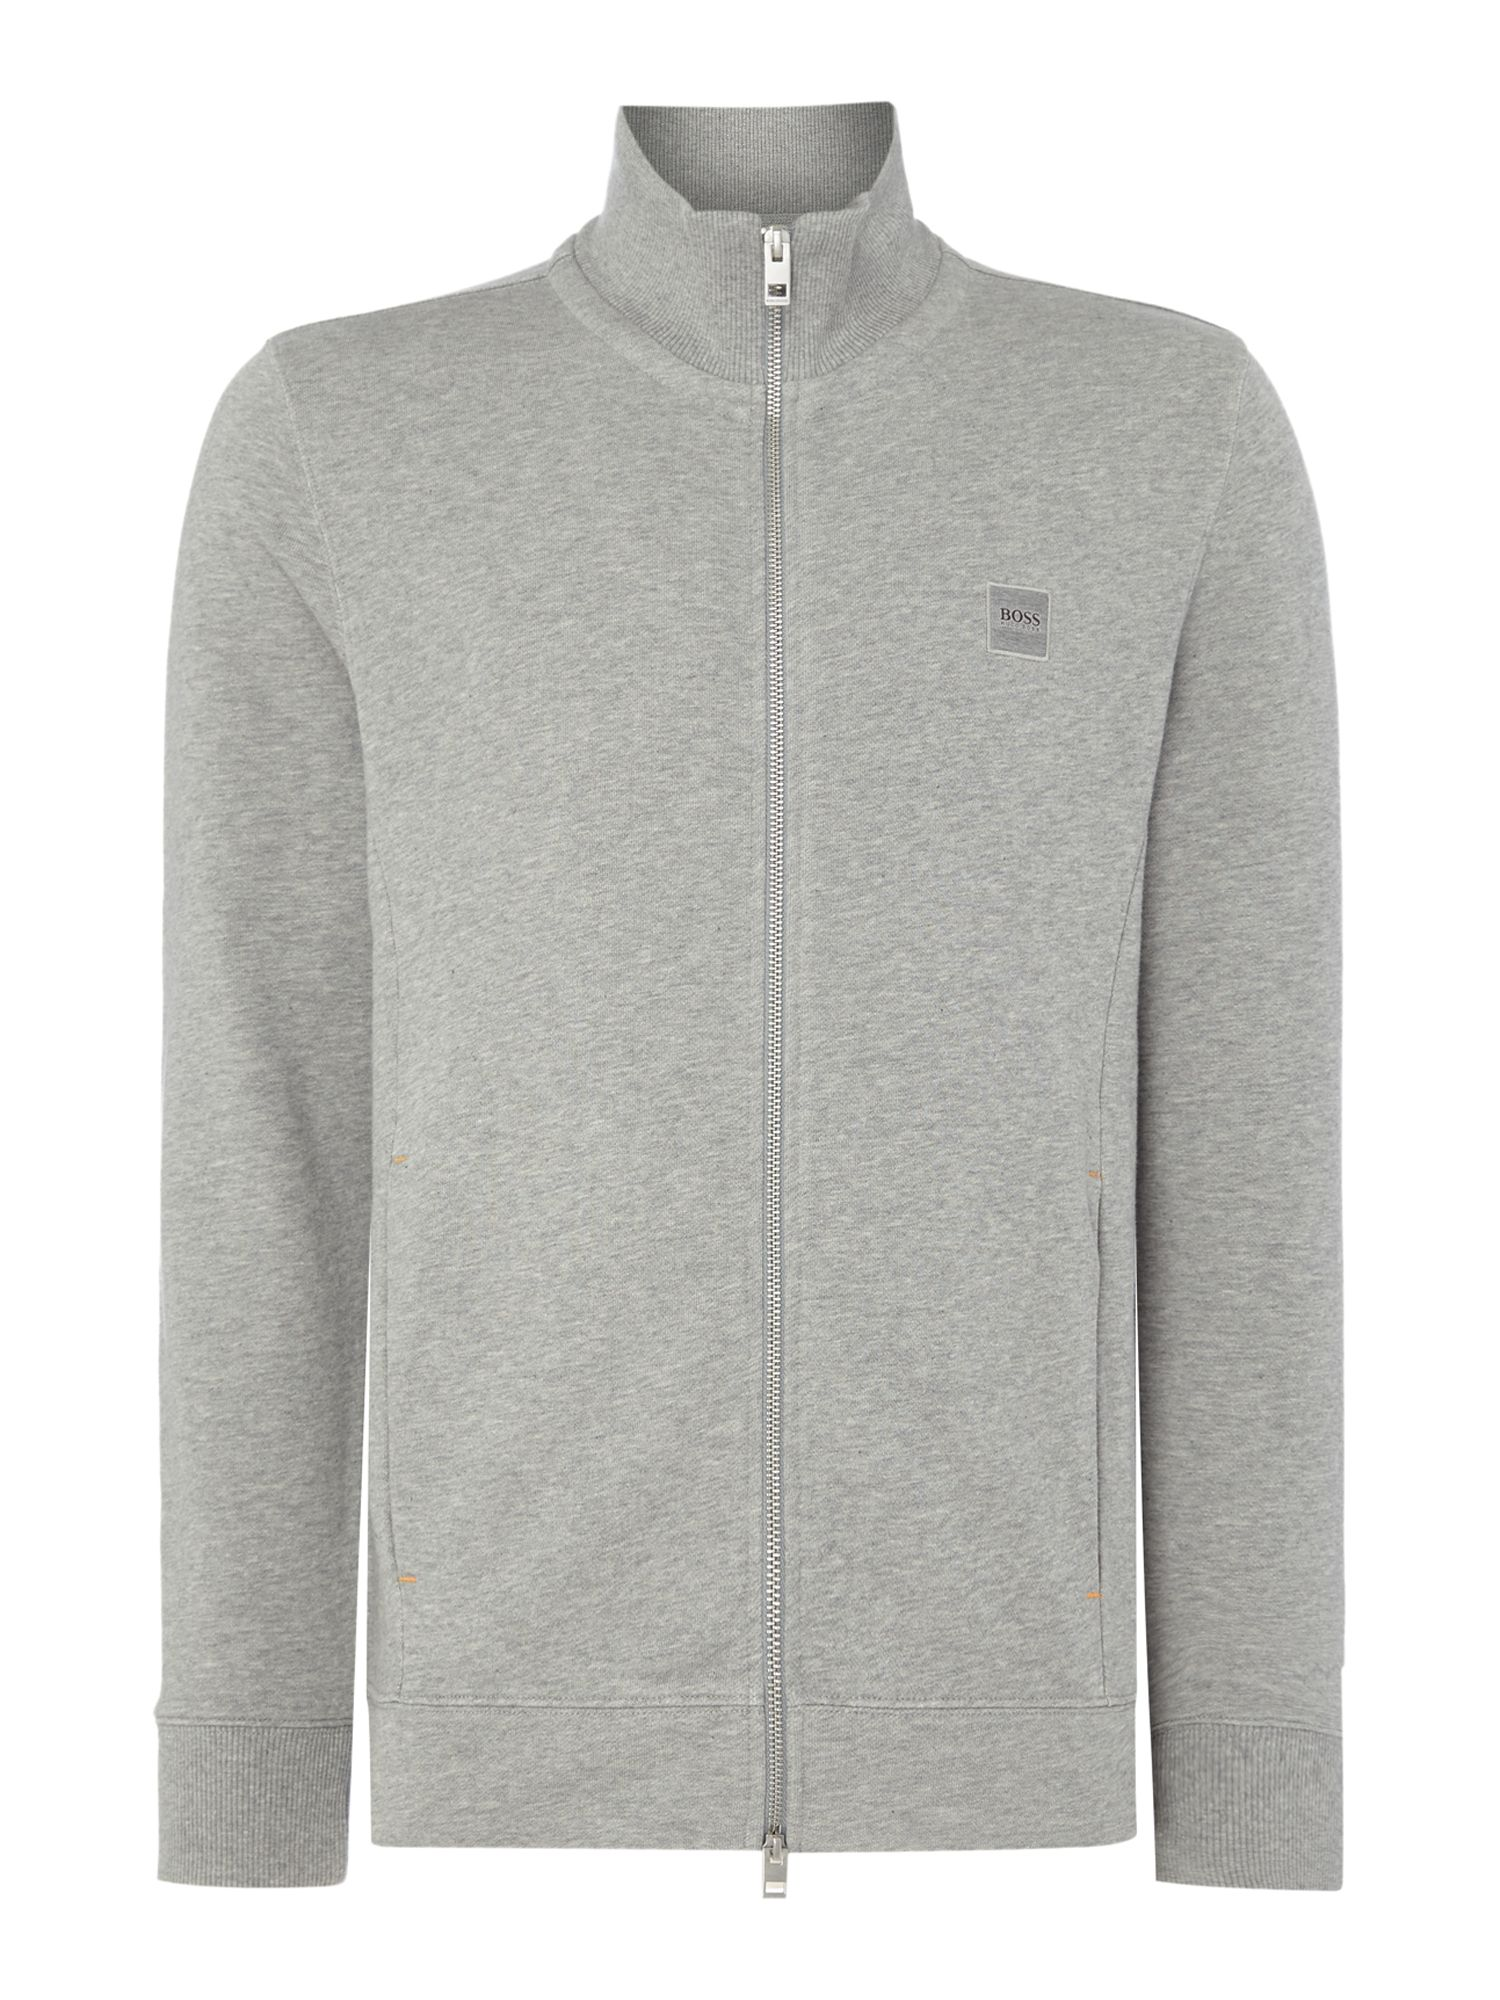 Men's Hugo Boss Zissou zip through funnel neck sweat top, Grey Marl